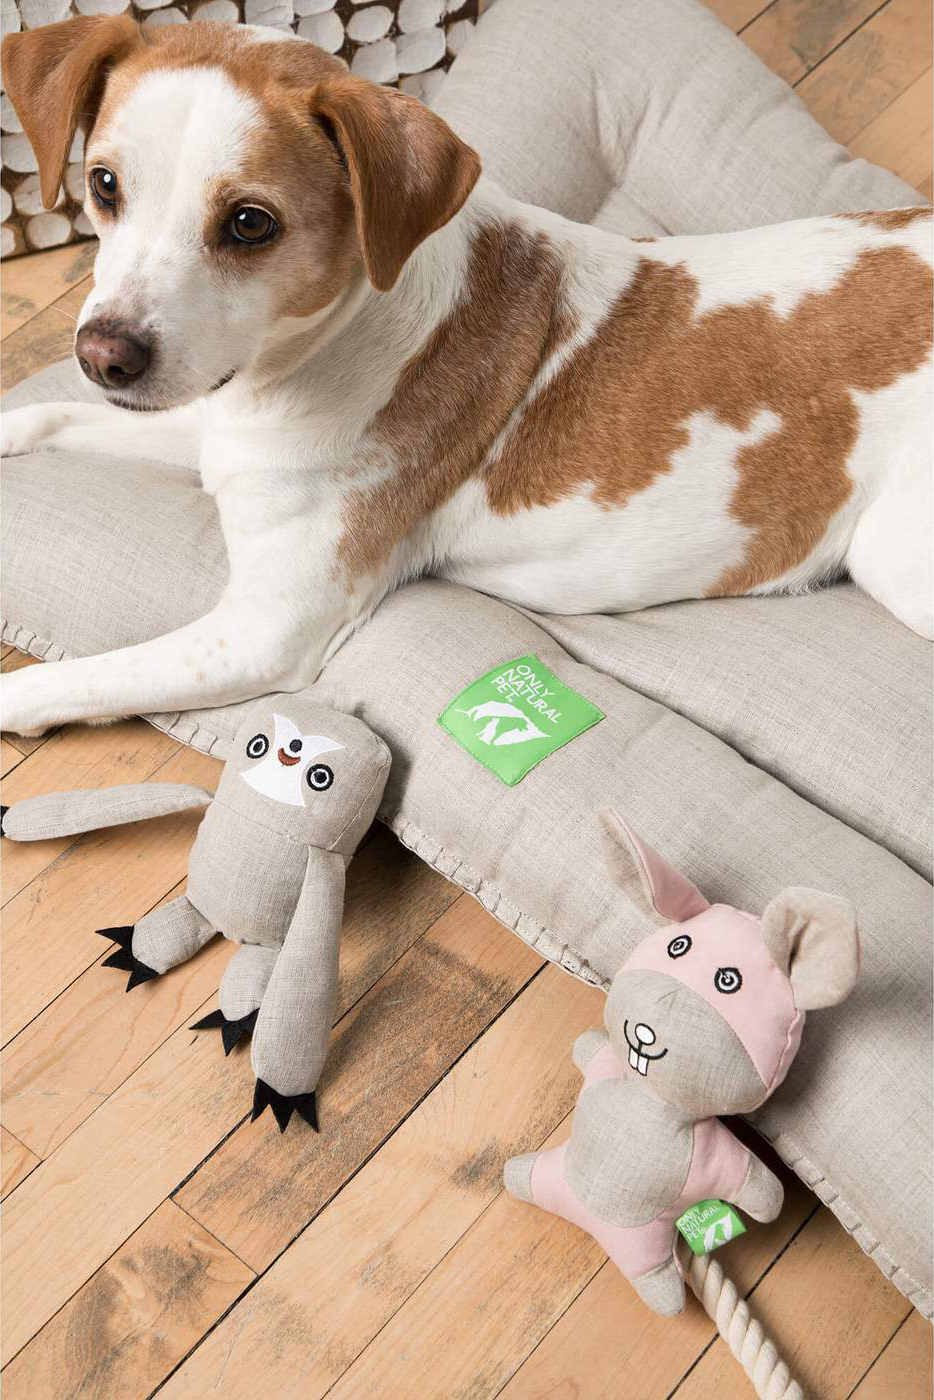 Only Natural Pet Eco-Friendly Hemp Pet Bed. Eco-Friendly Products for Dogs